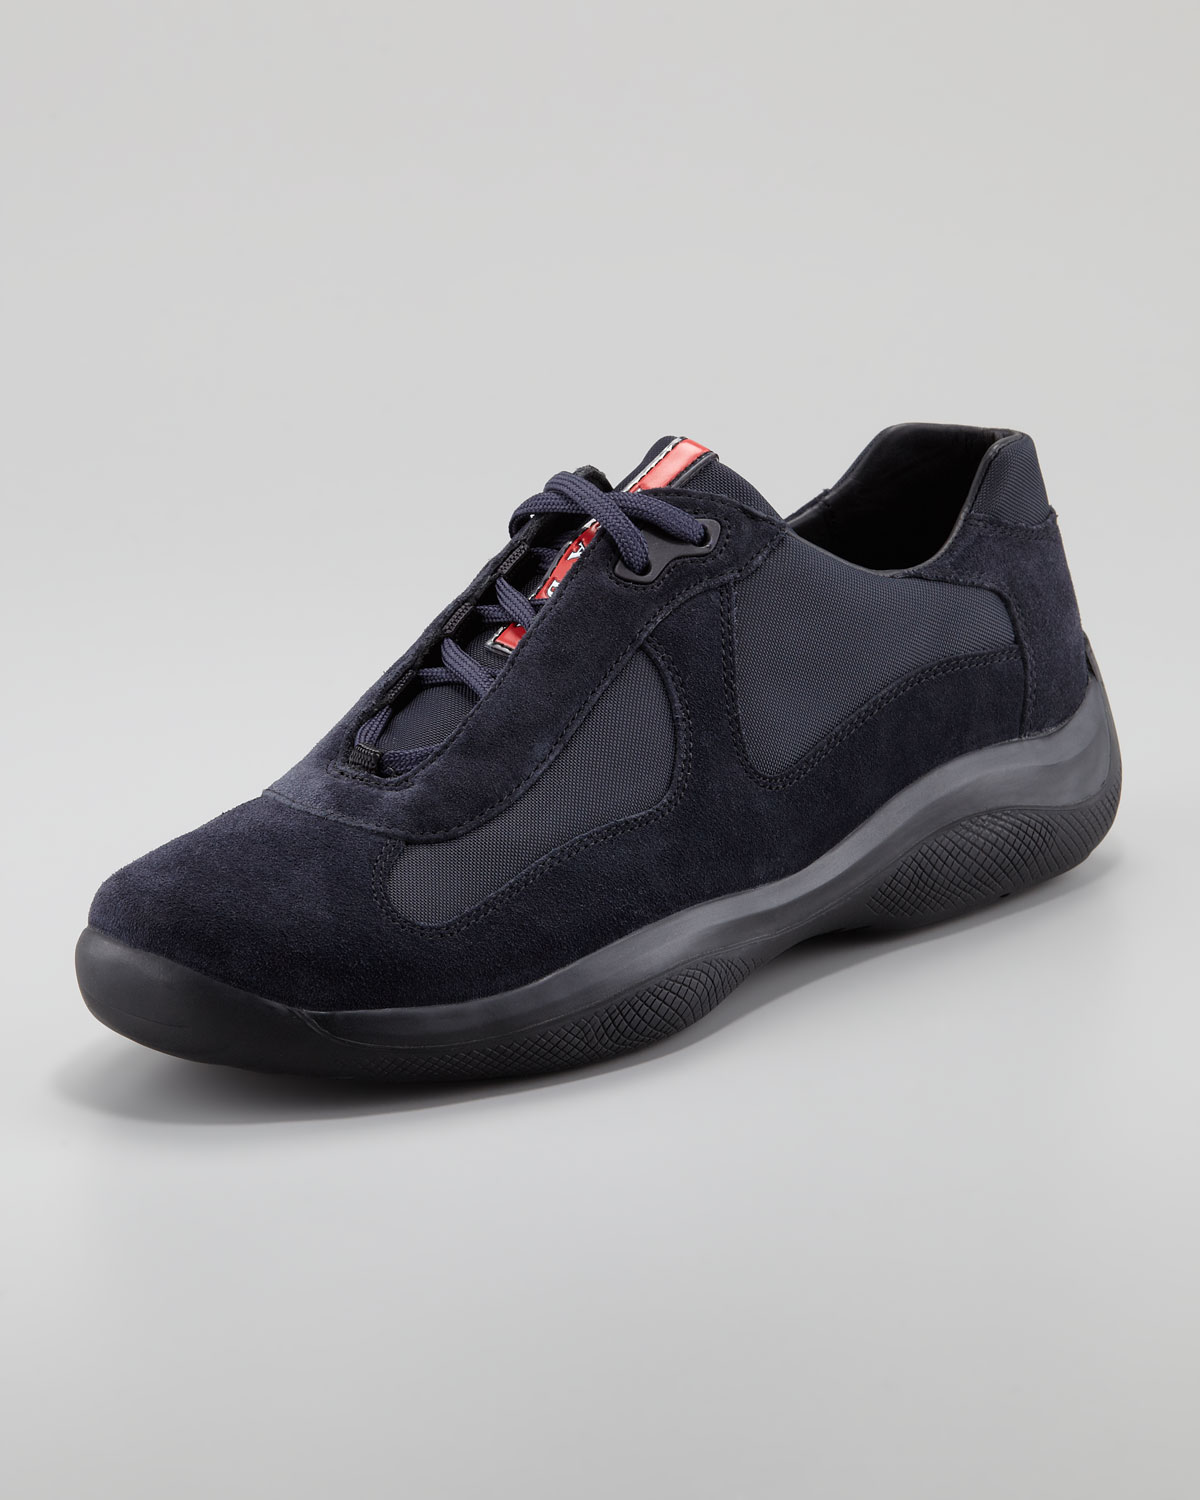 Prada Americas Cup Mens Shoes